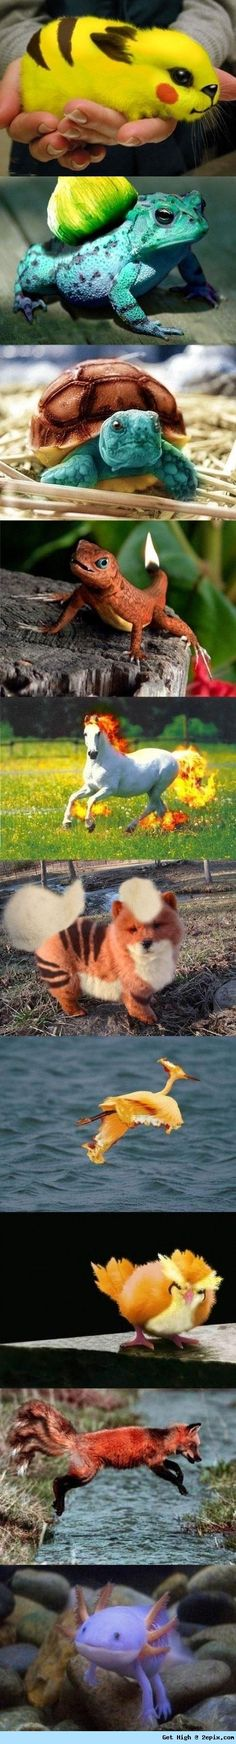 Pokemon in real life?!